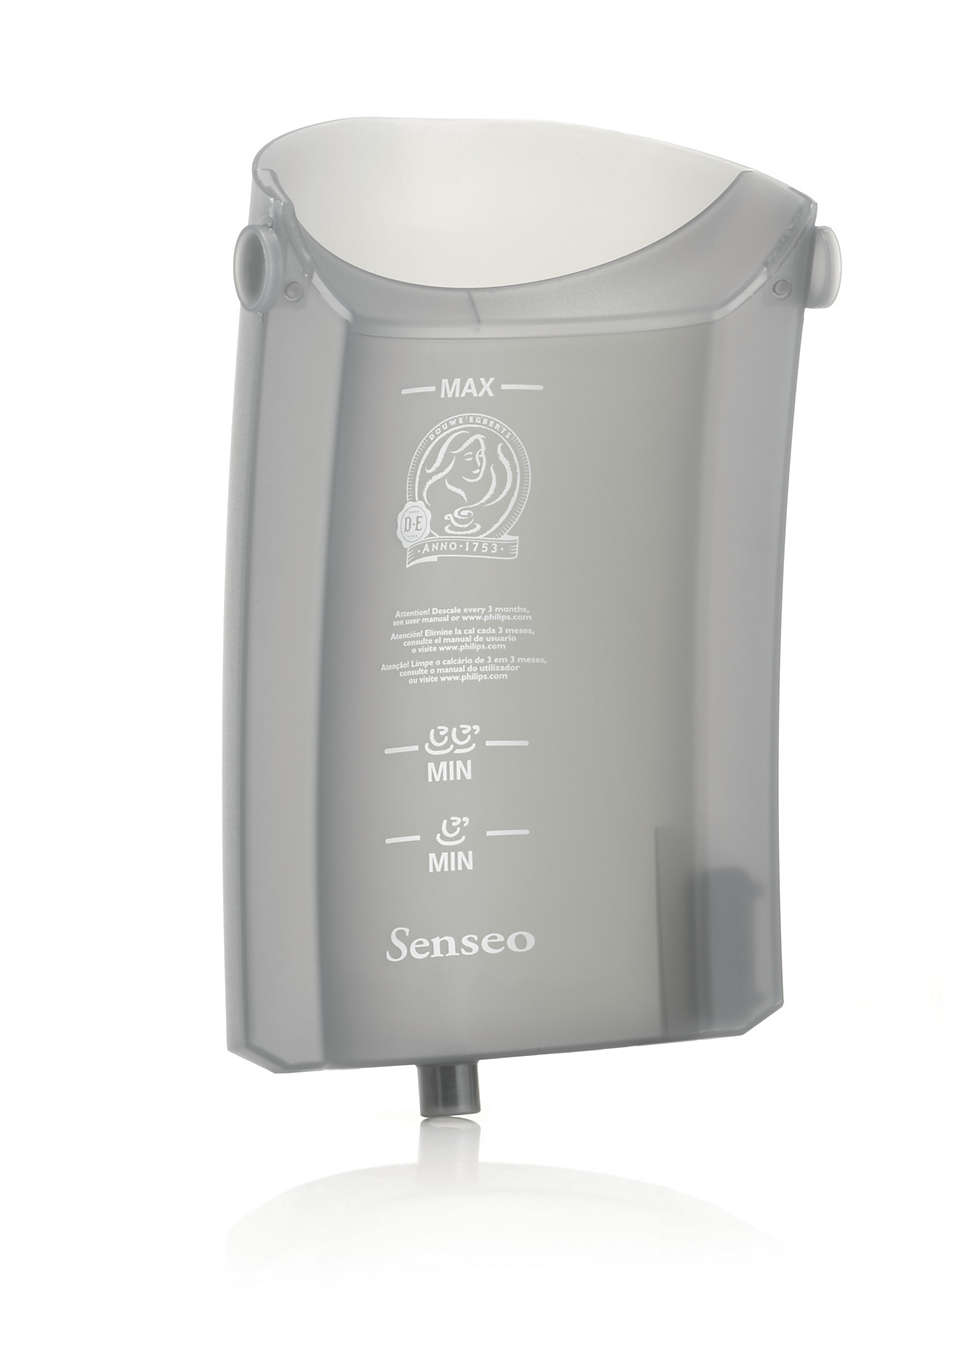 To store the water in your SENSEO@